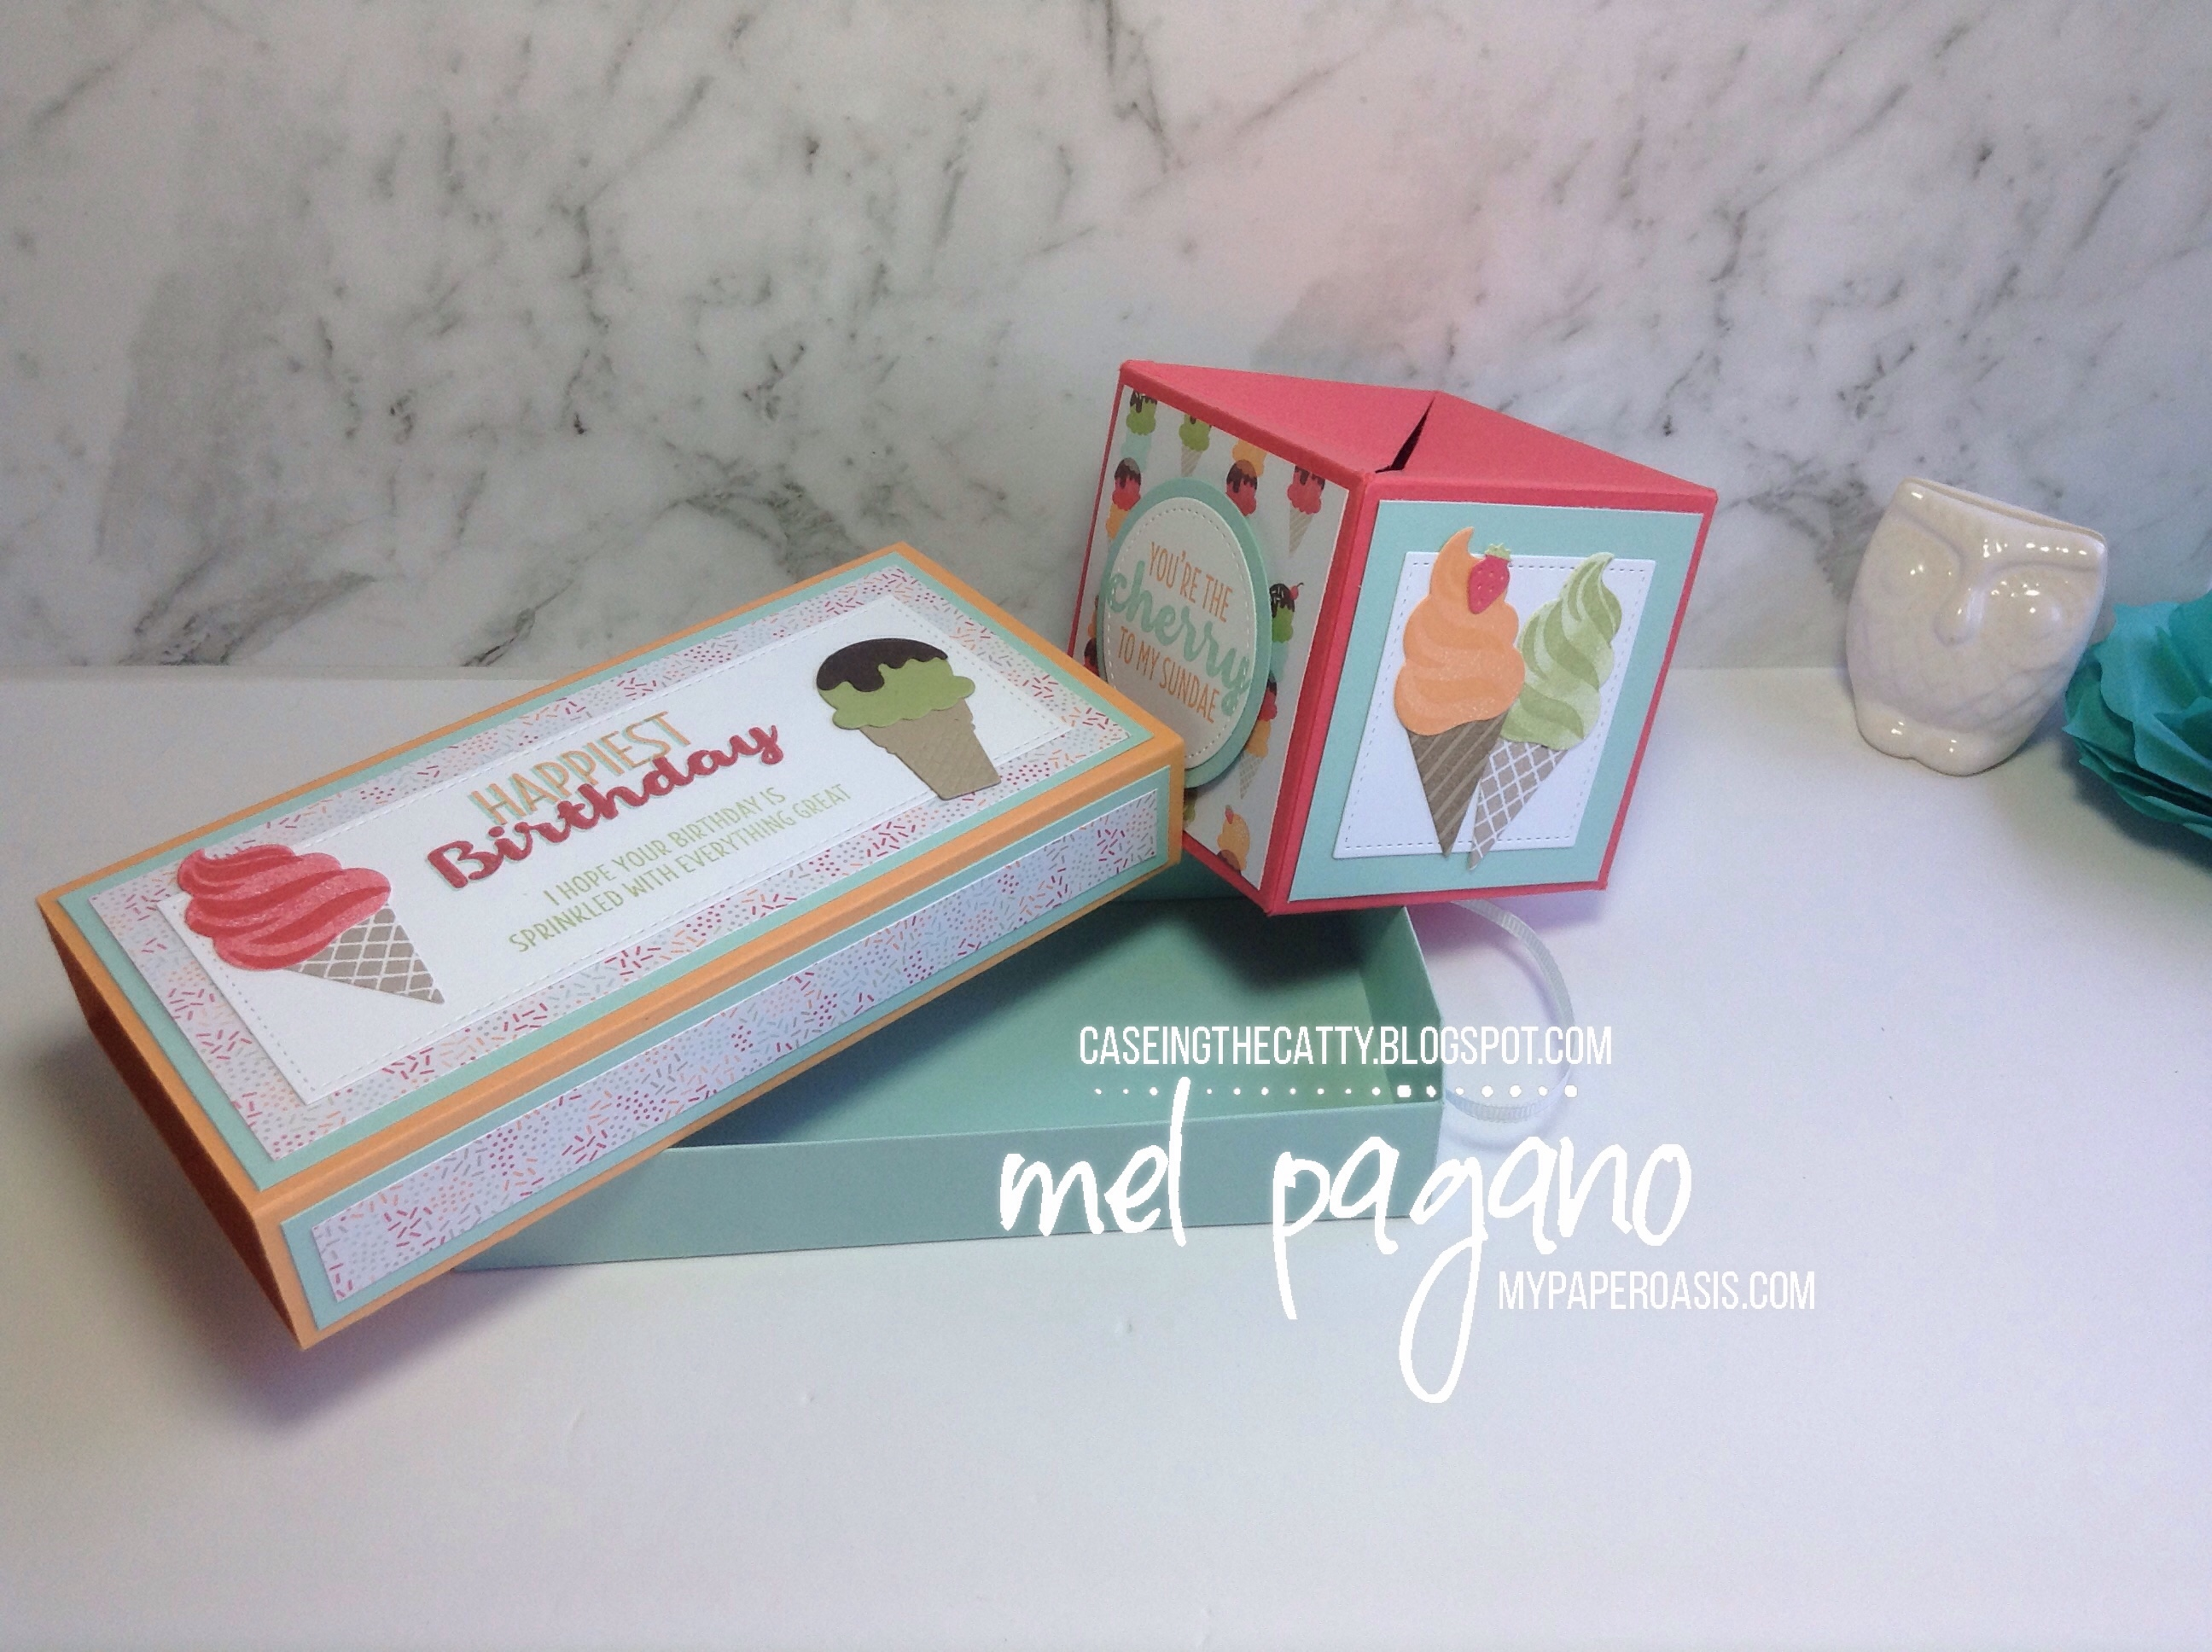 Poppincardboxwithcooltreats